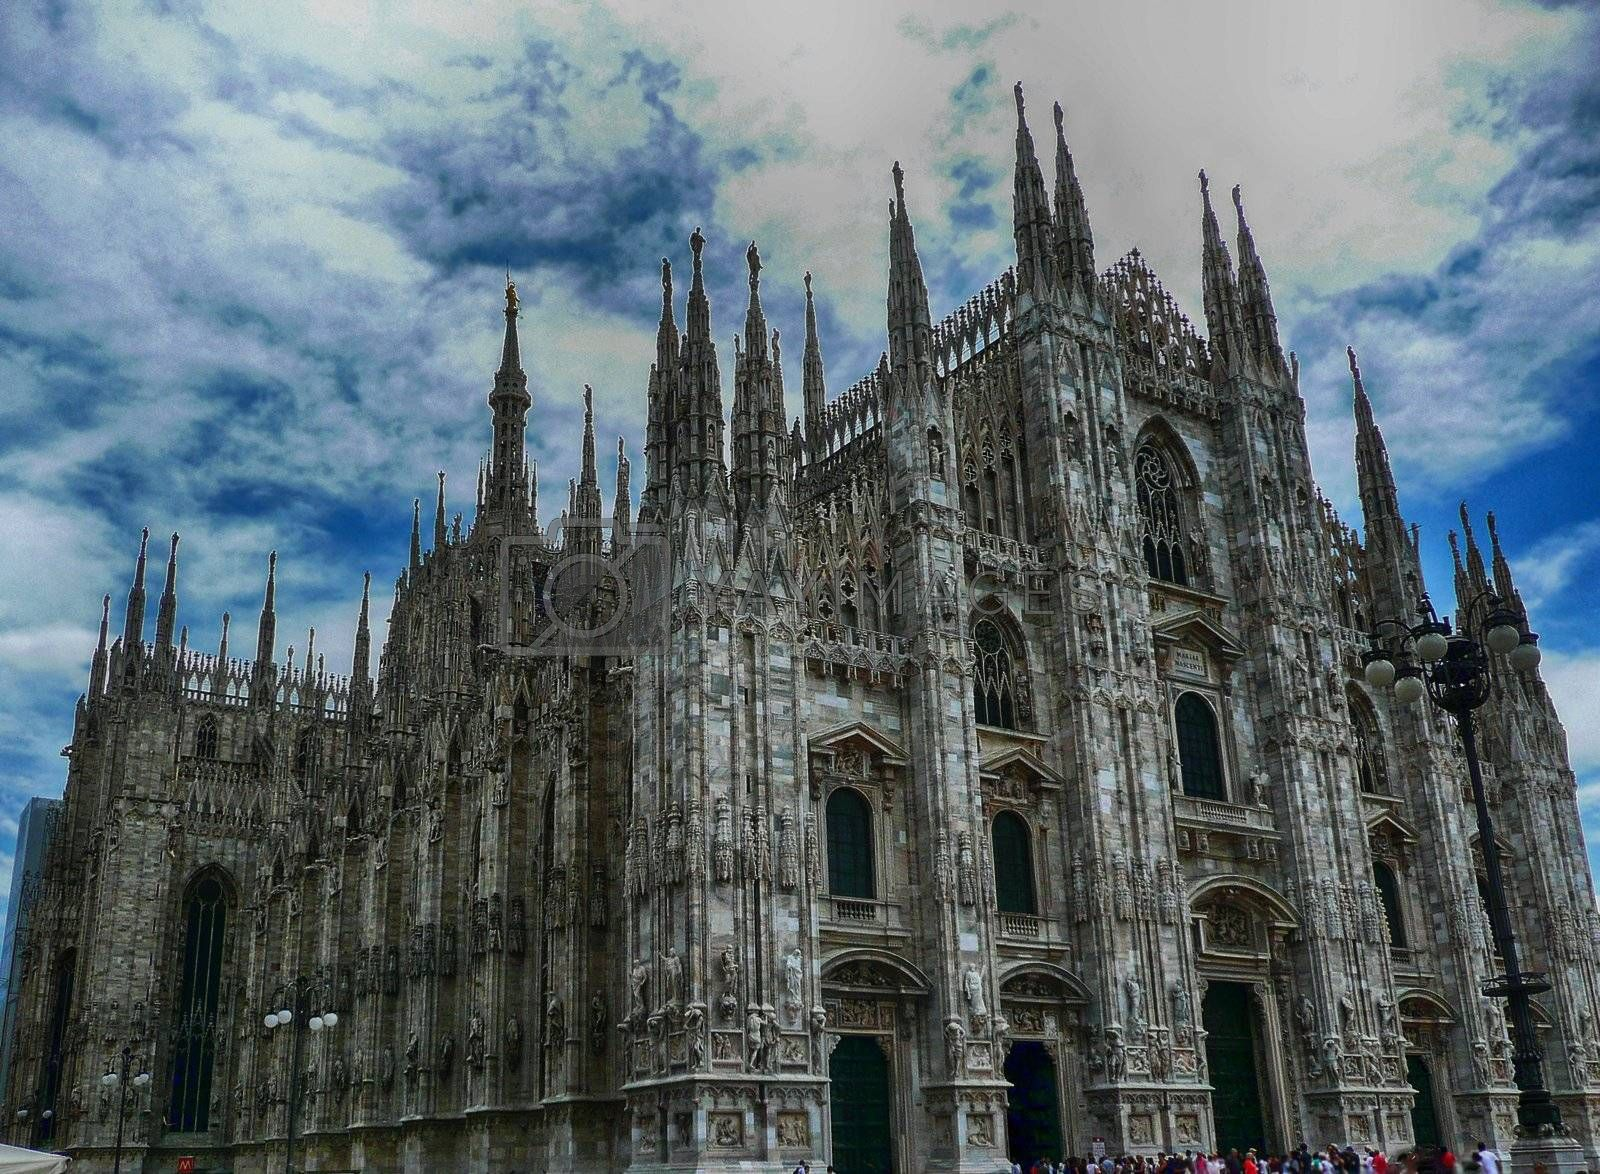 Milan Cathedral against a scenic cloudy sky, Italy